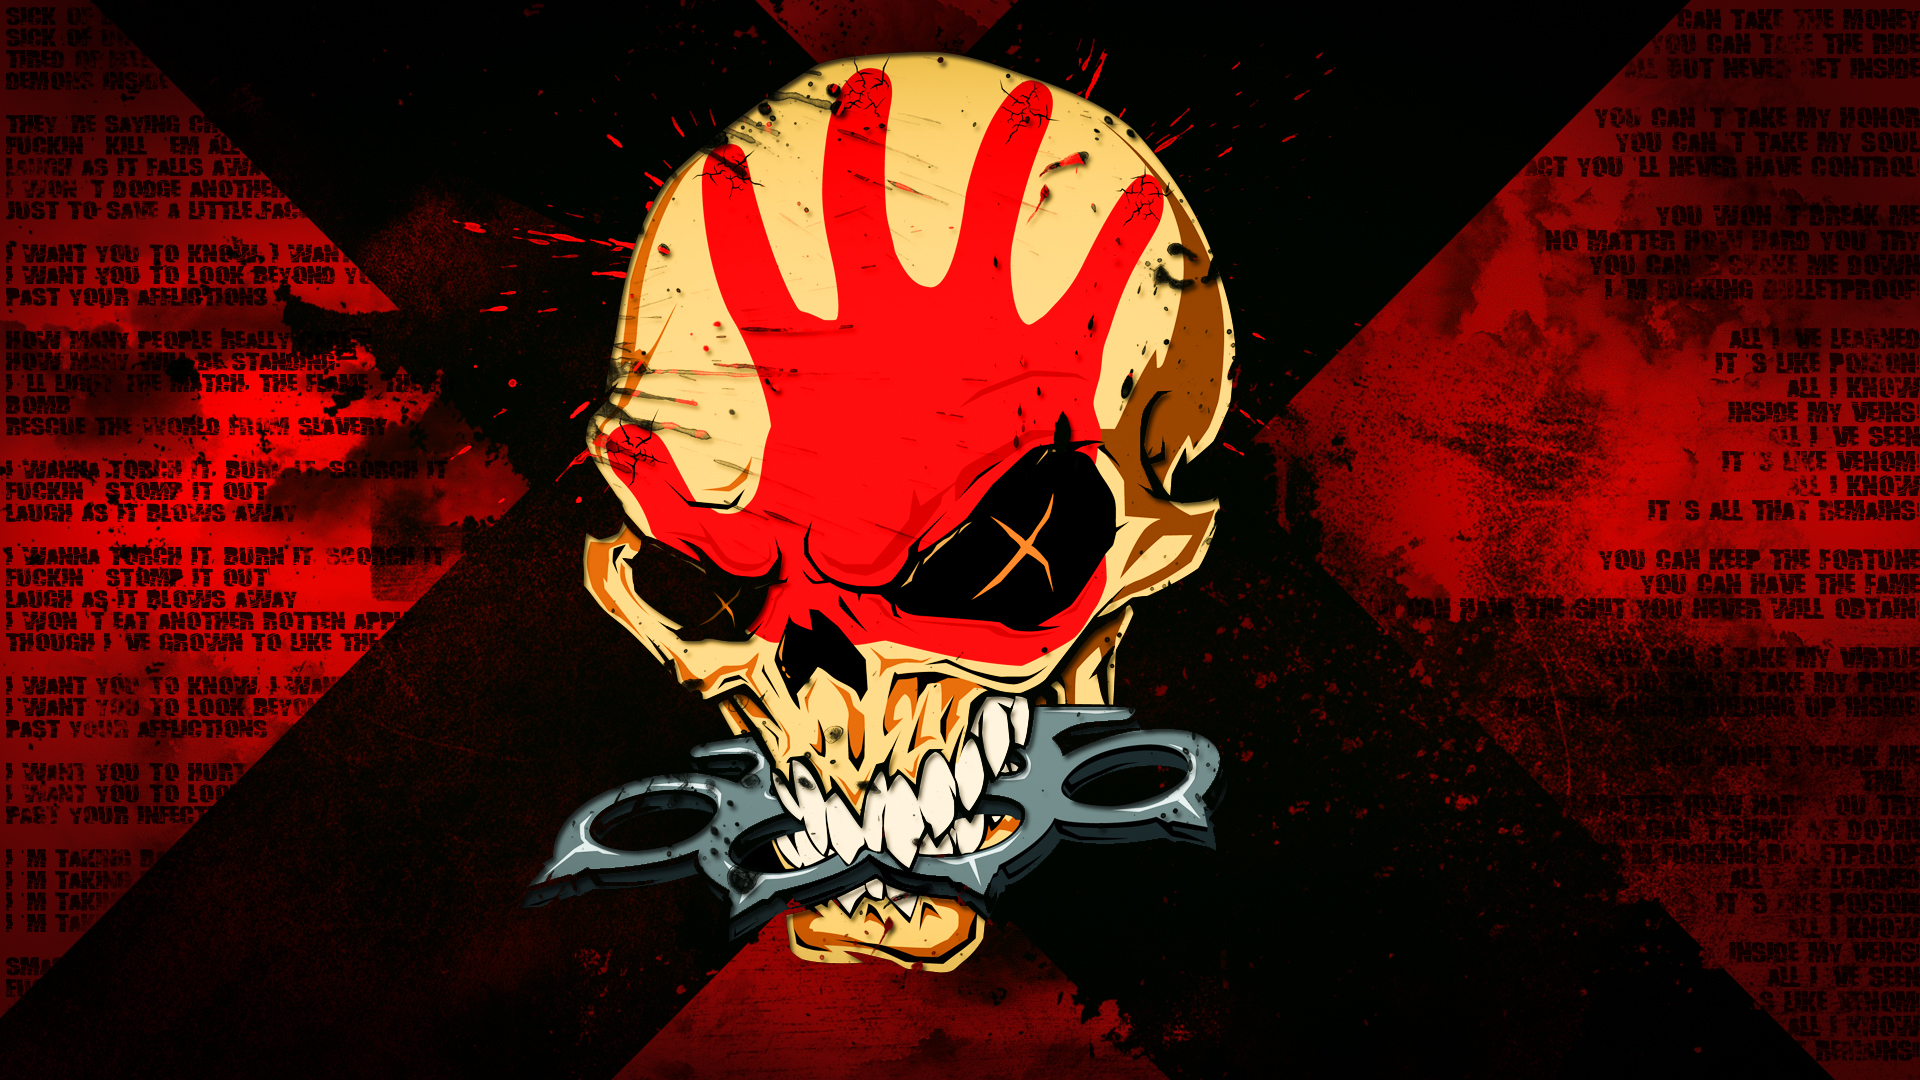 Скачать музыку five finger death punch cold || socialized-rickety. Cf.